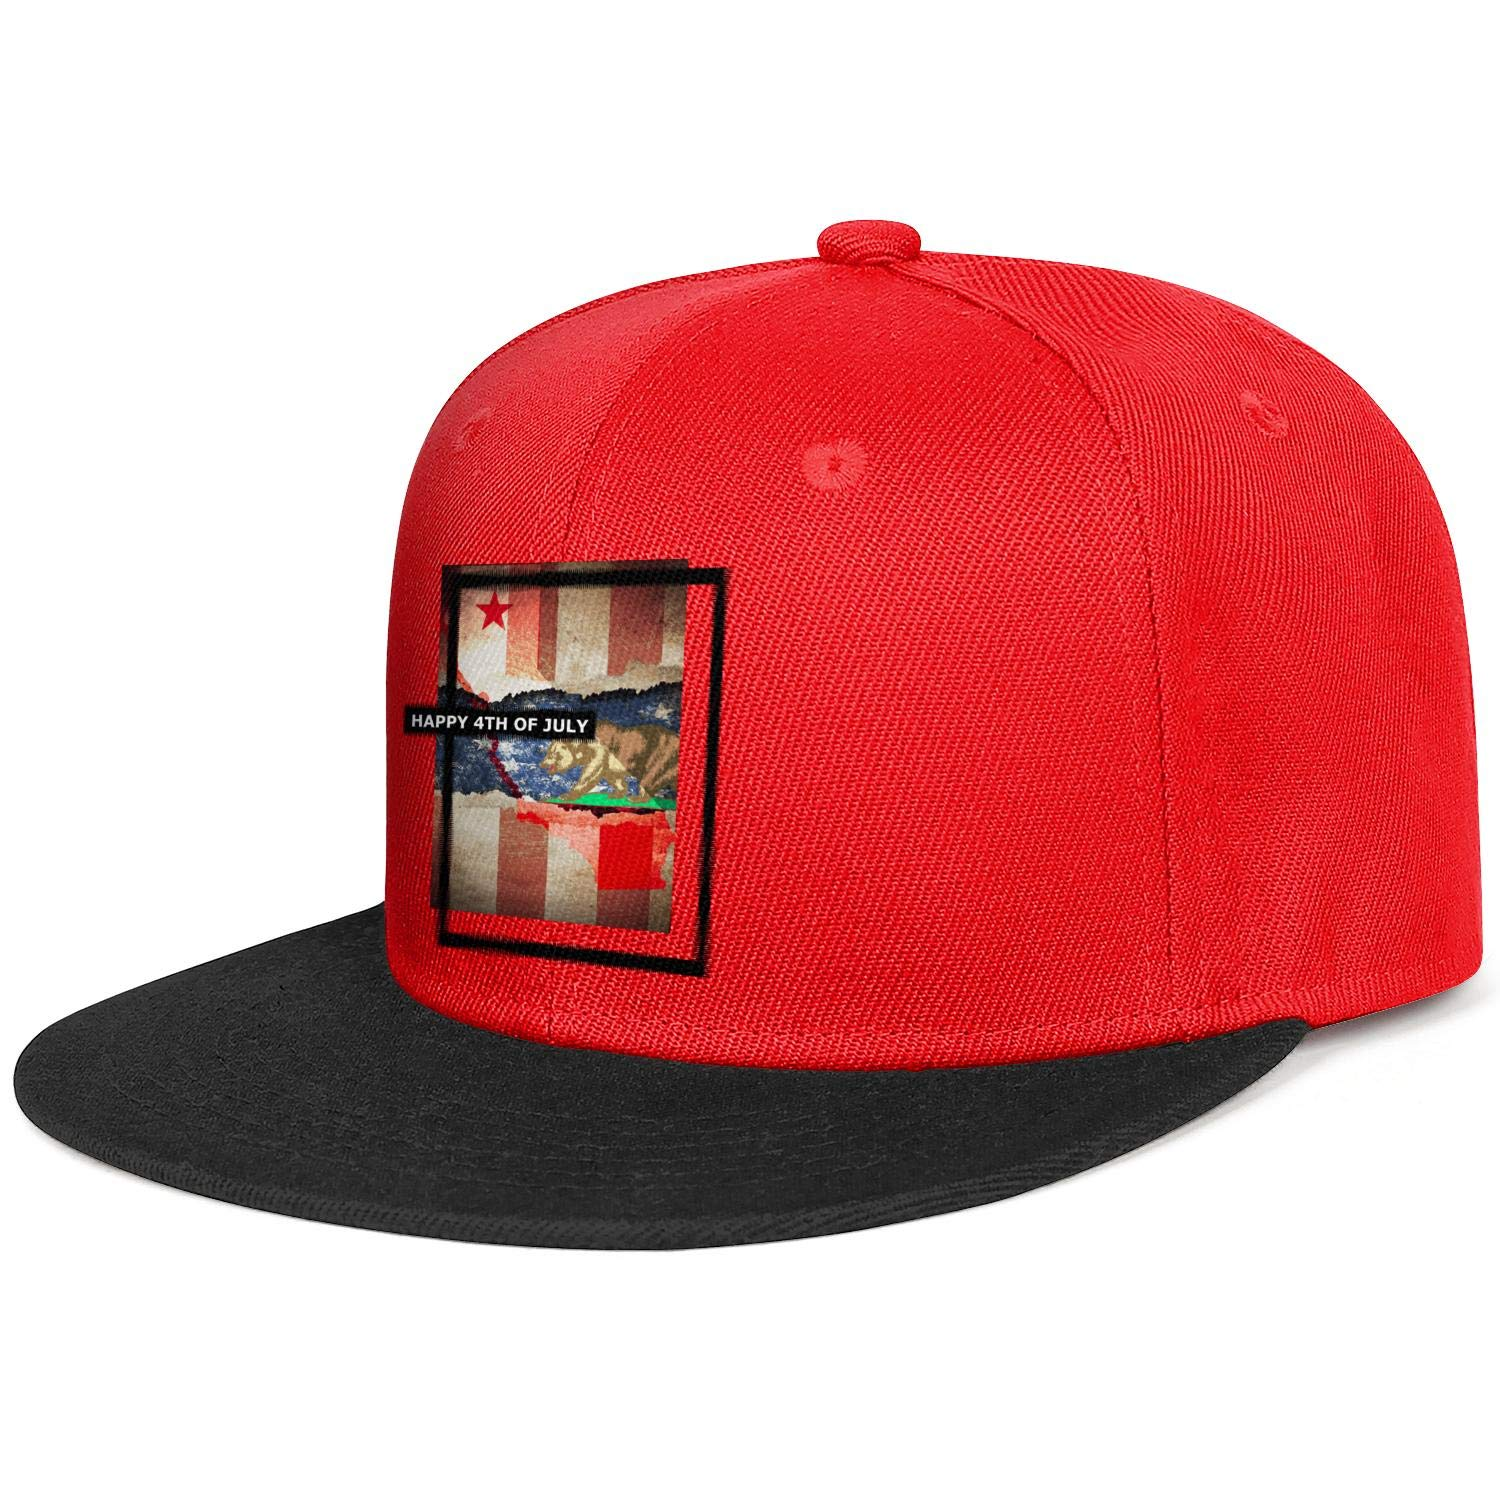 Unisex Mesh Snapback Caps Love Independence Day Patriotic Kitten Flat Hip Hop Baseball Hats